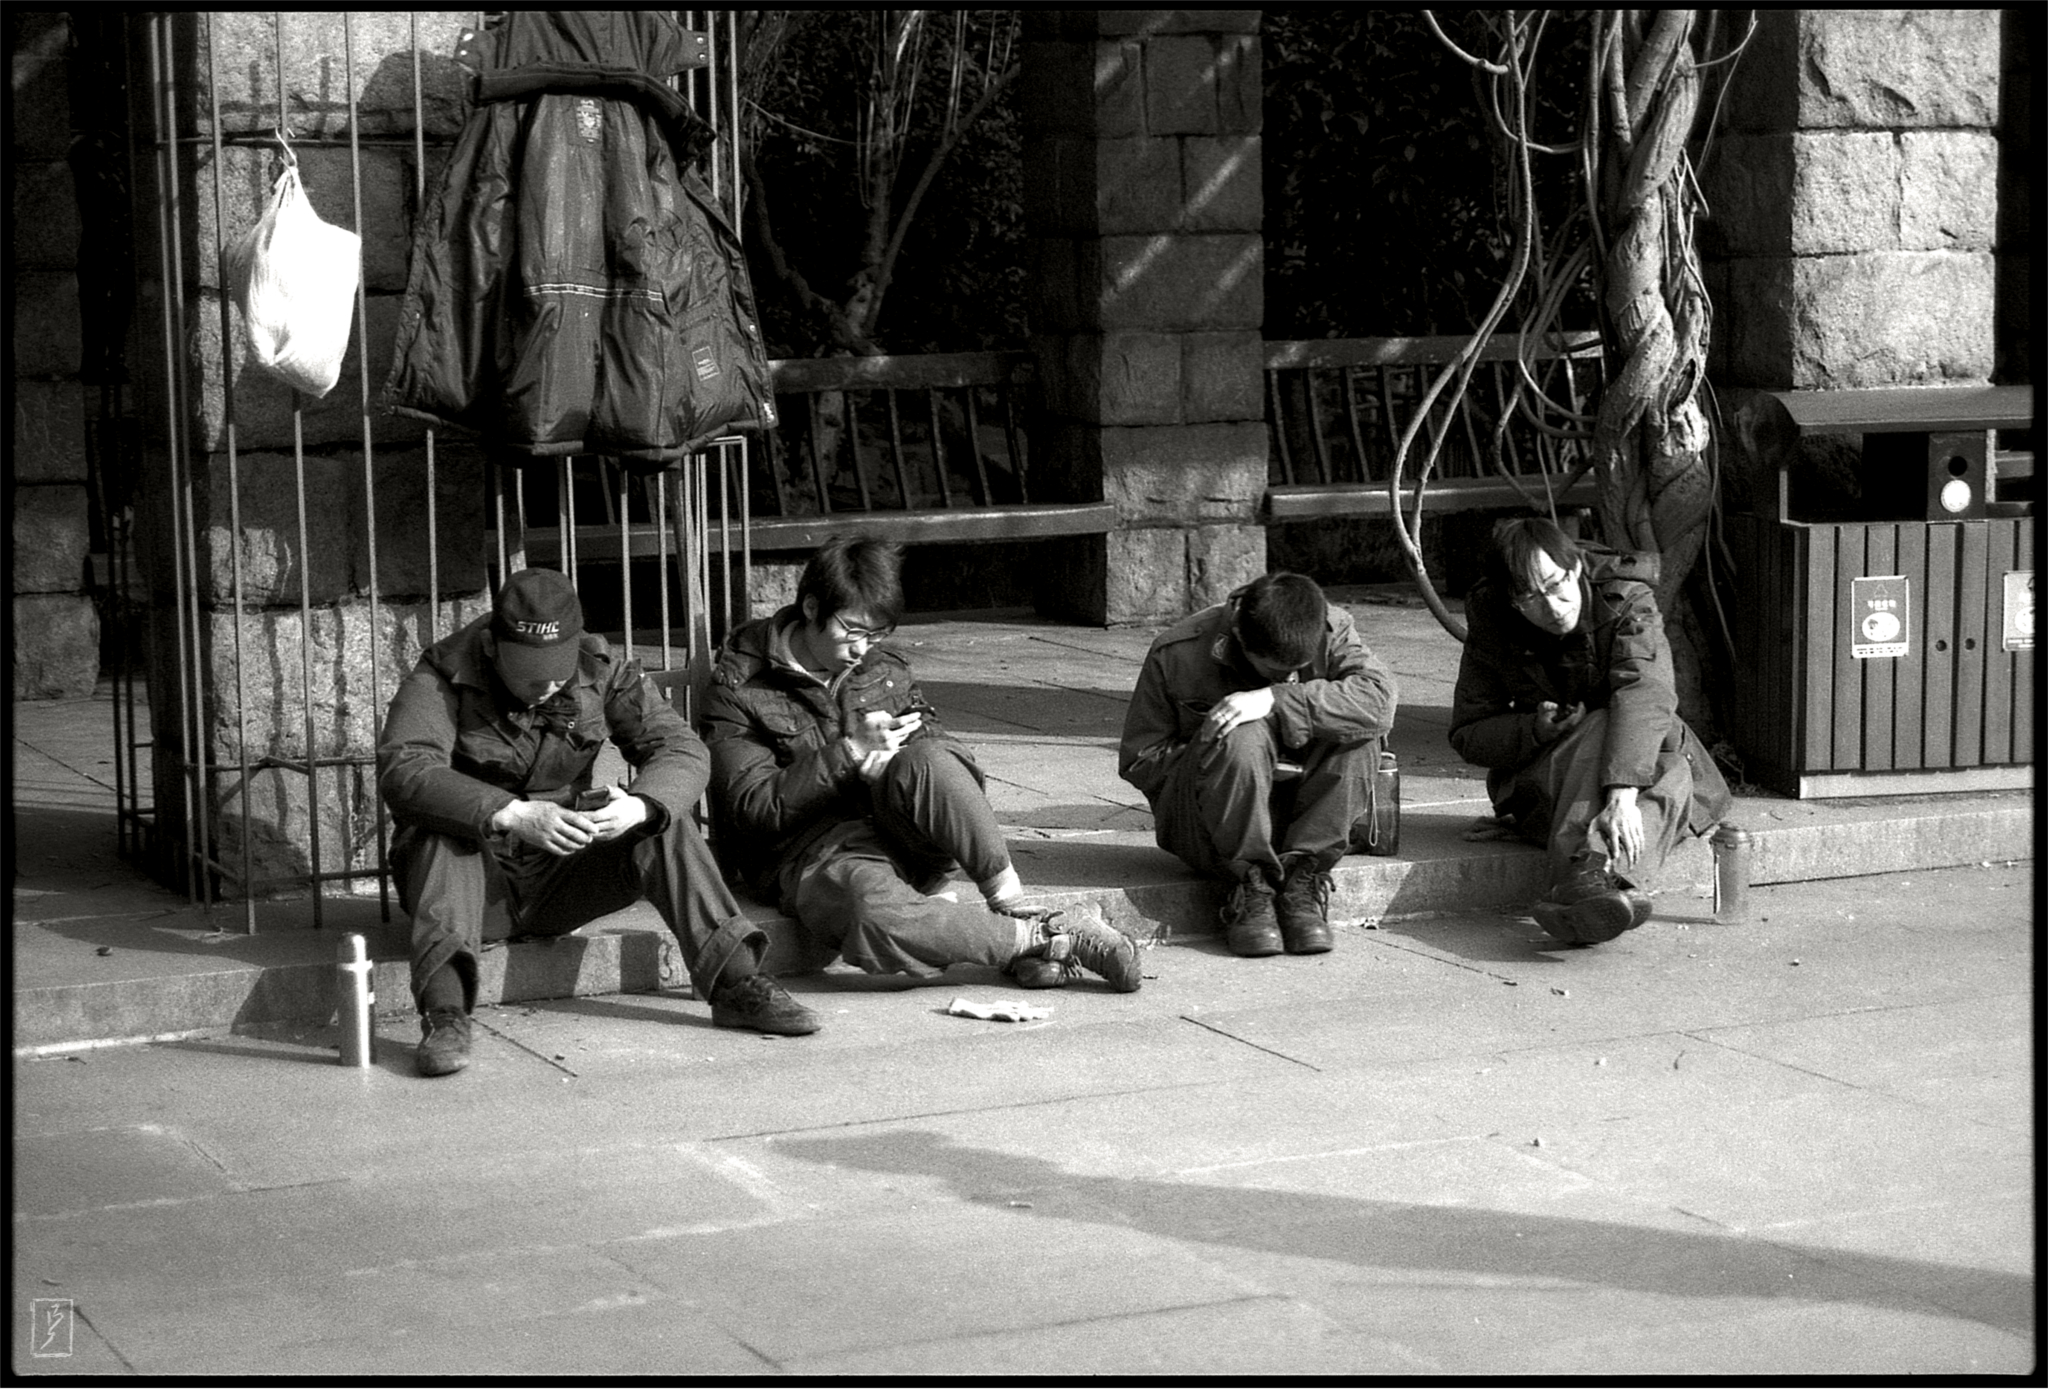 Lu Xun park (): Young gardeners on a break using their smartphones.